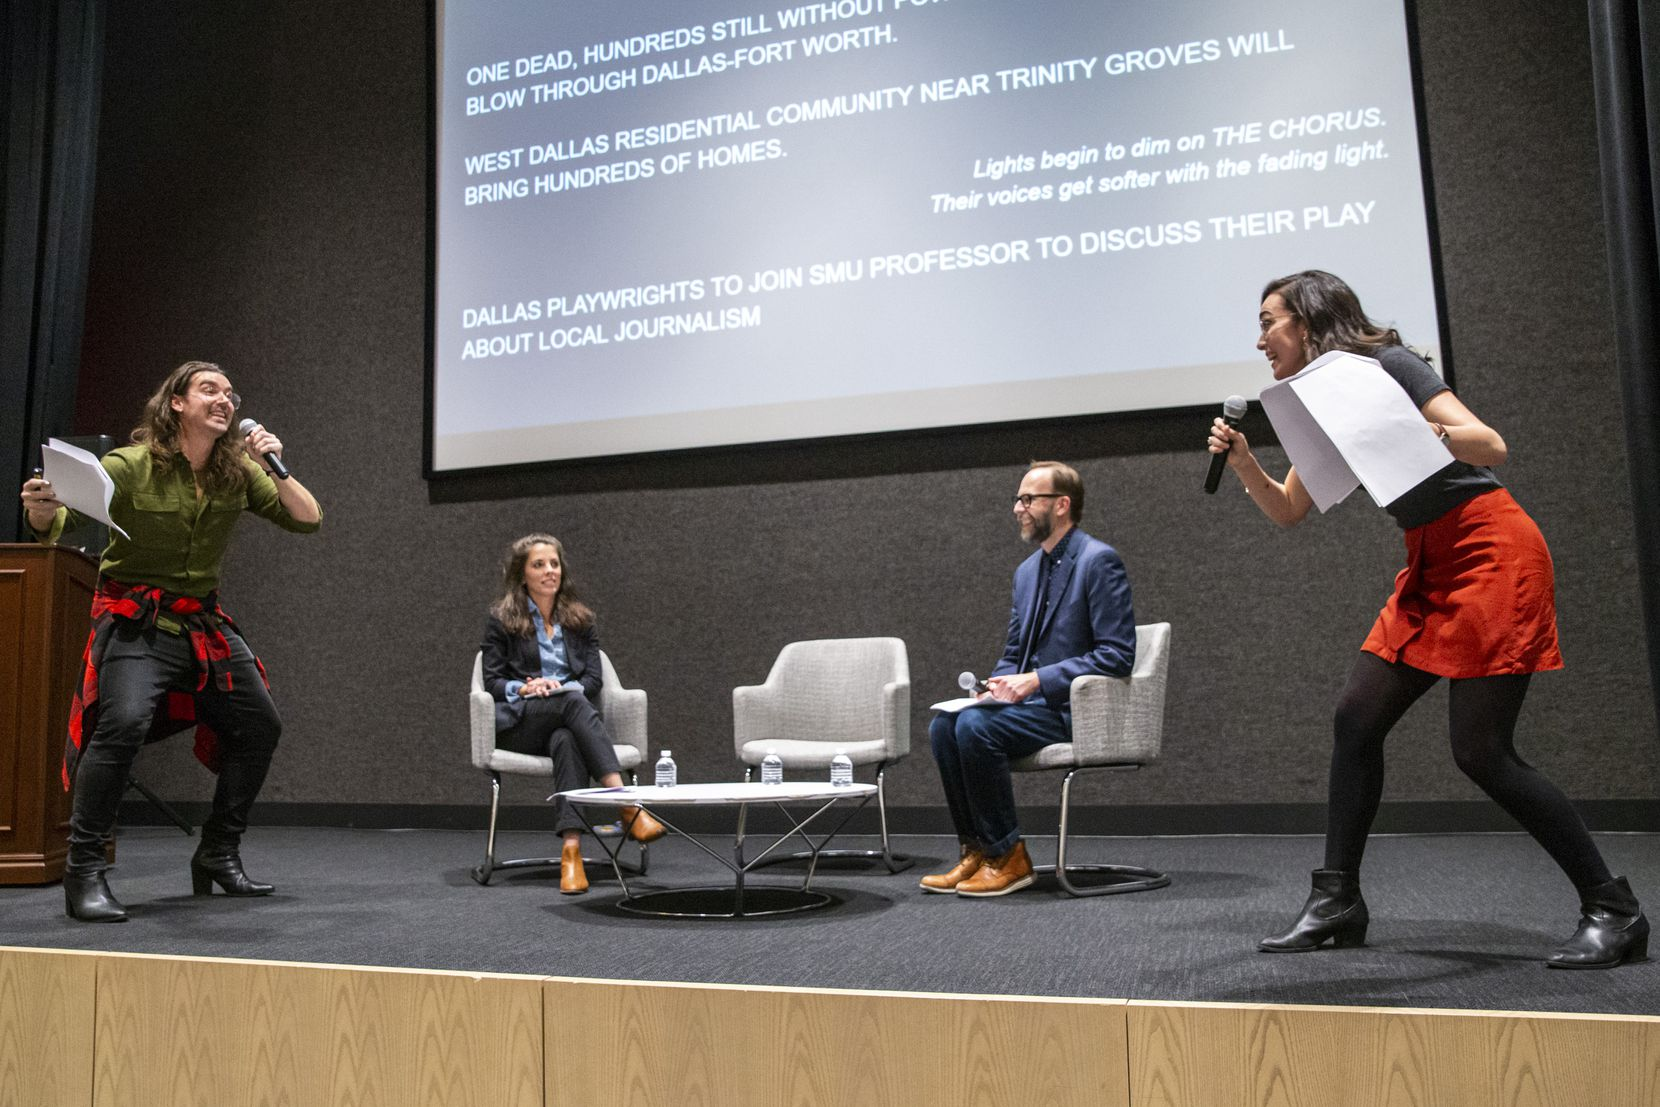 Brigham Mosley (left) and Janielle Kastner (far right) perform an excerpt from their new 'Playwrights in the Newsroom' drama with help from SMU journalism professor Lauren Smart and The News' Arts & Entertainment Editor Christopher Wynn, during 'Duets,' a conversation series for members of 'The Dallas Morning News.'